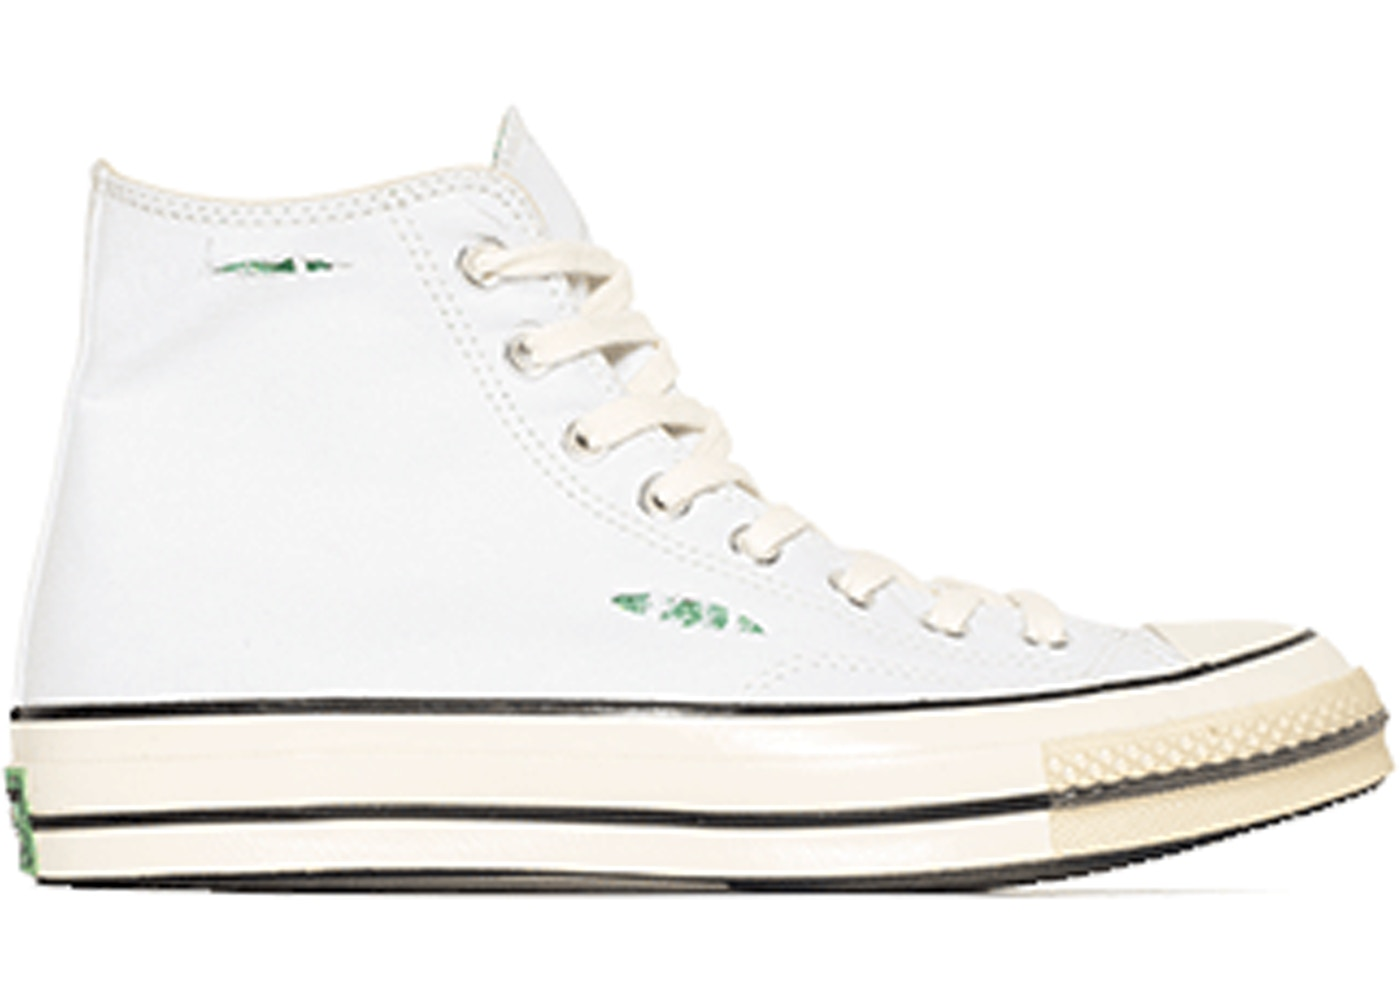 595ed173d624 Converse Chuck Taylor All-Star 70s Hi Dr. Woo Wear to Reveal White ...